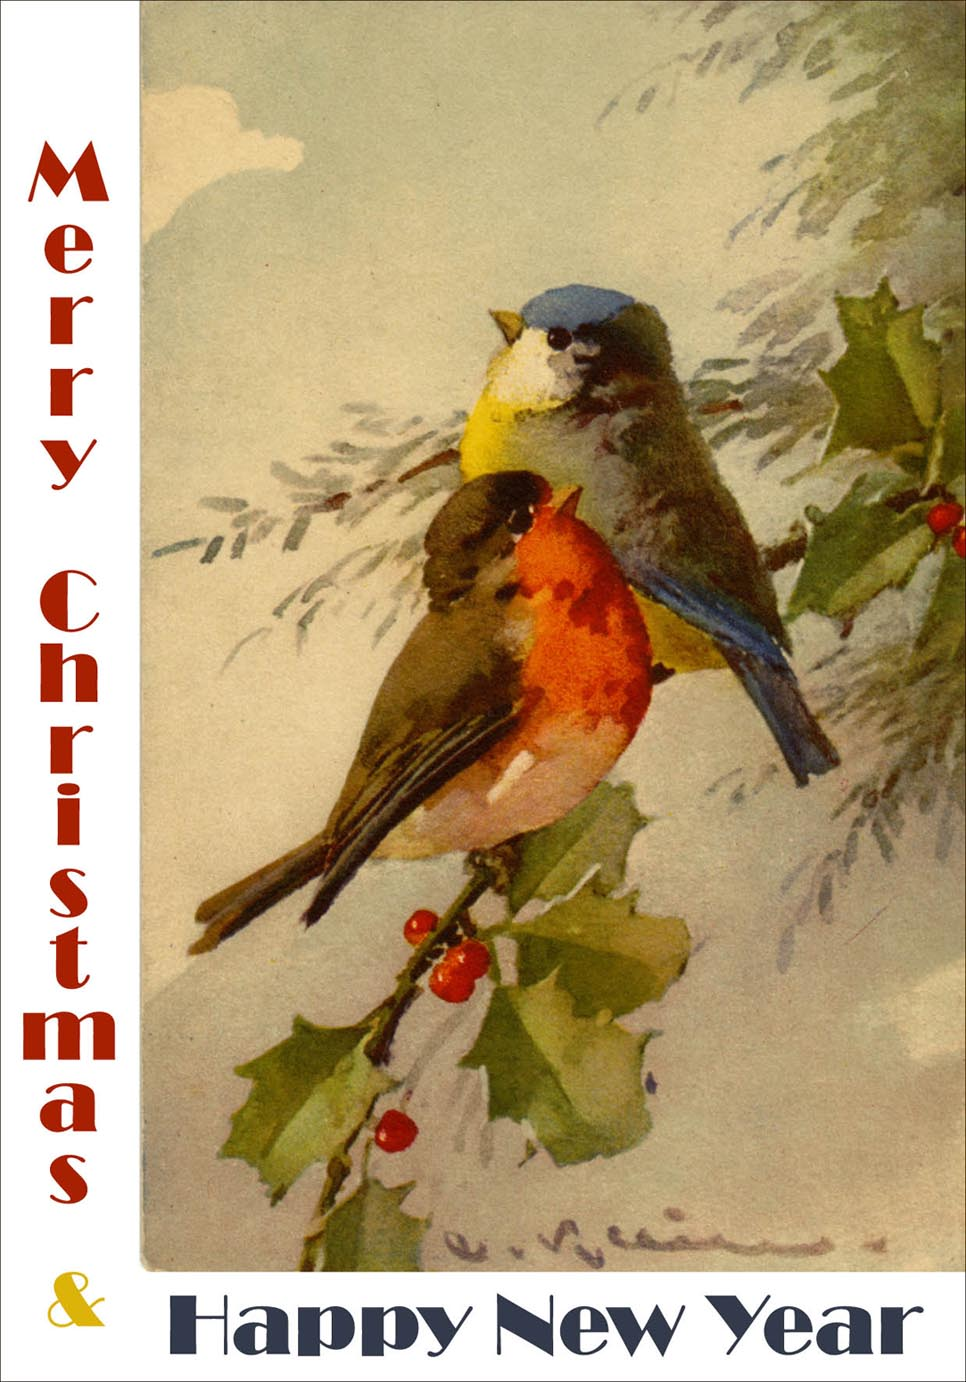 Vintage New Year and Christmas greeting card with 2 colorful winter birds